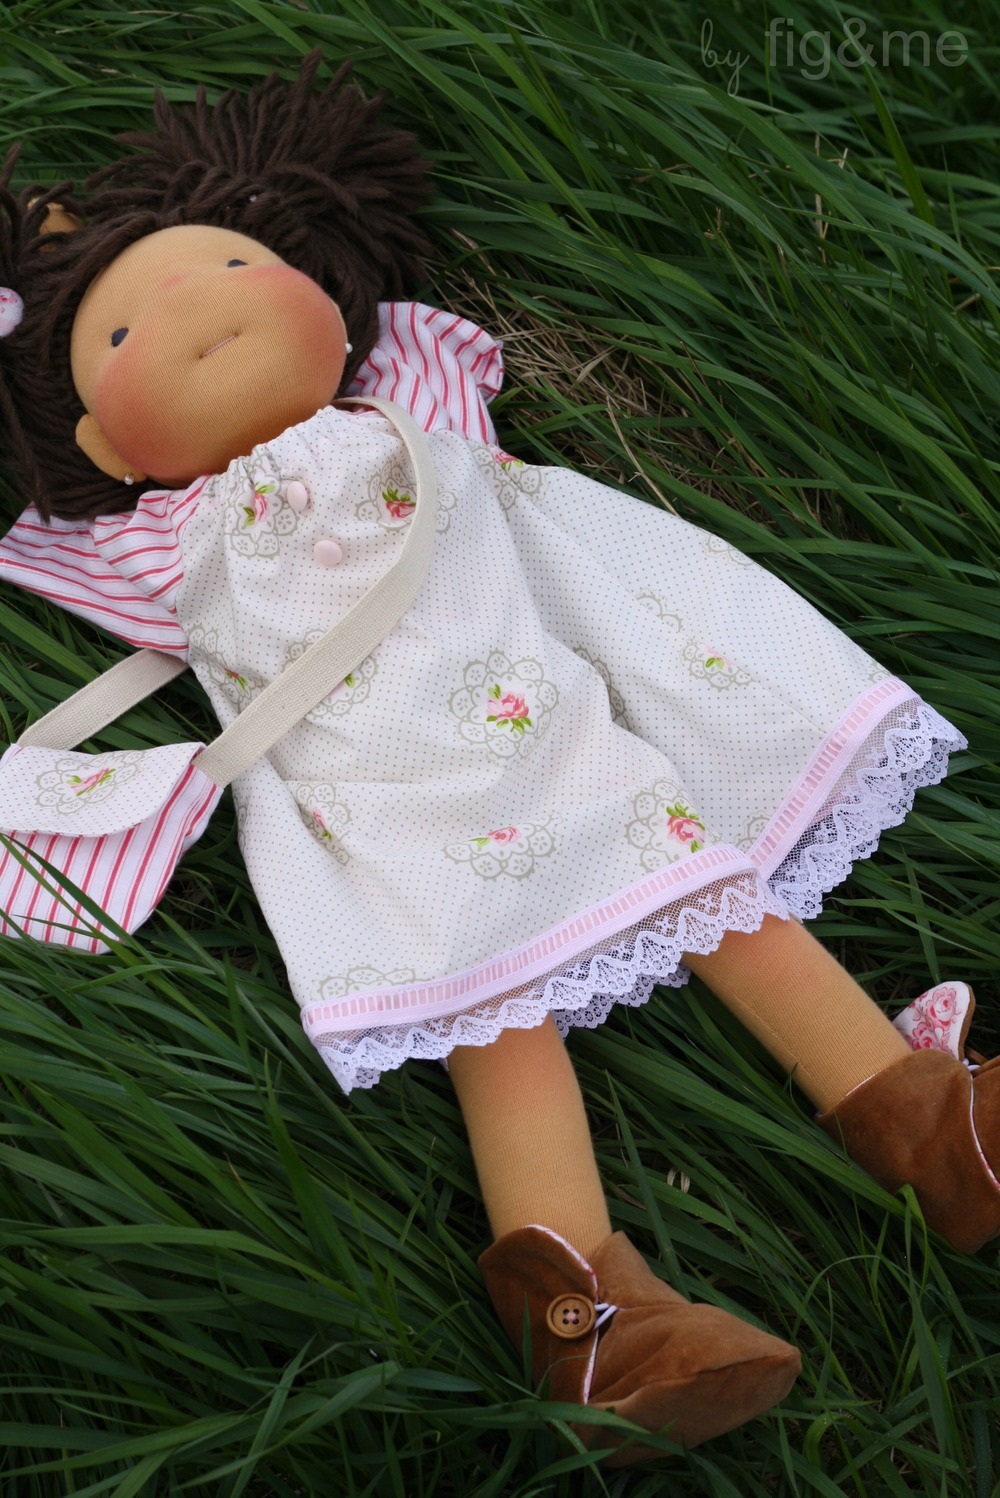 ...to enjoy daydreaming on the fresh grass, a summer pleasure. By figandme.